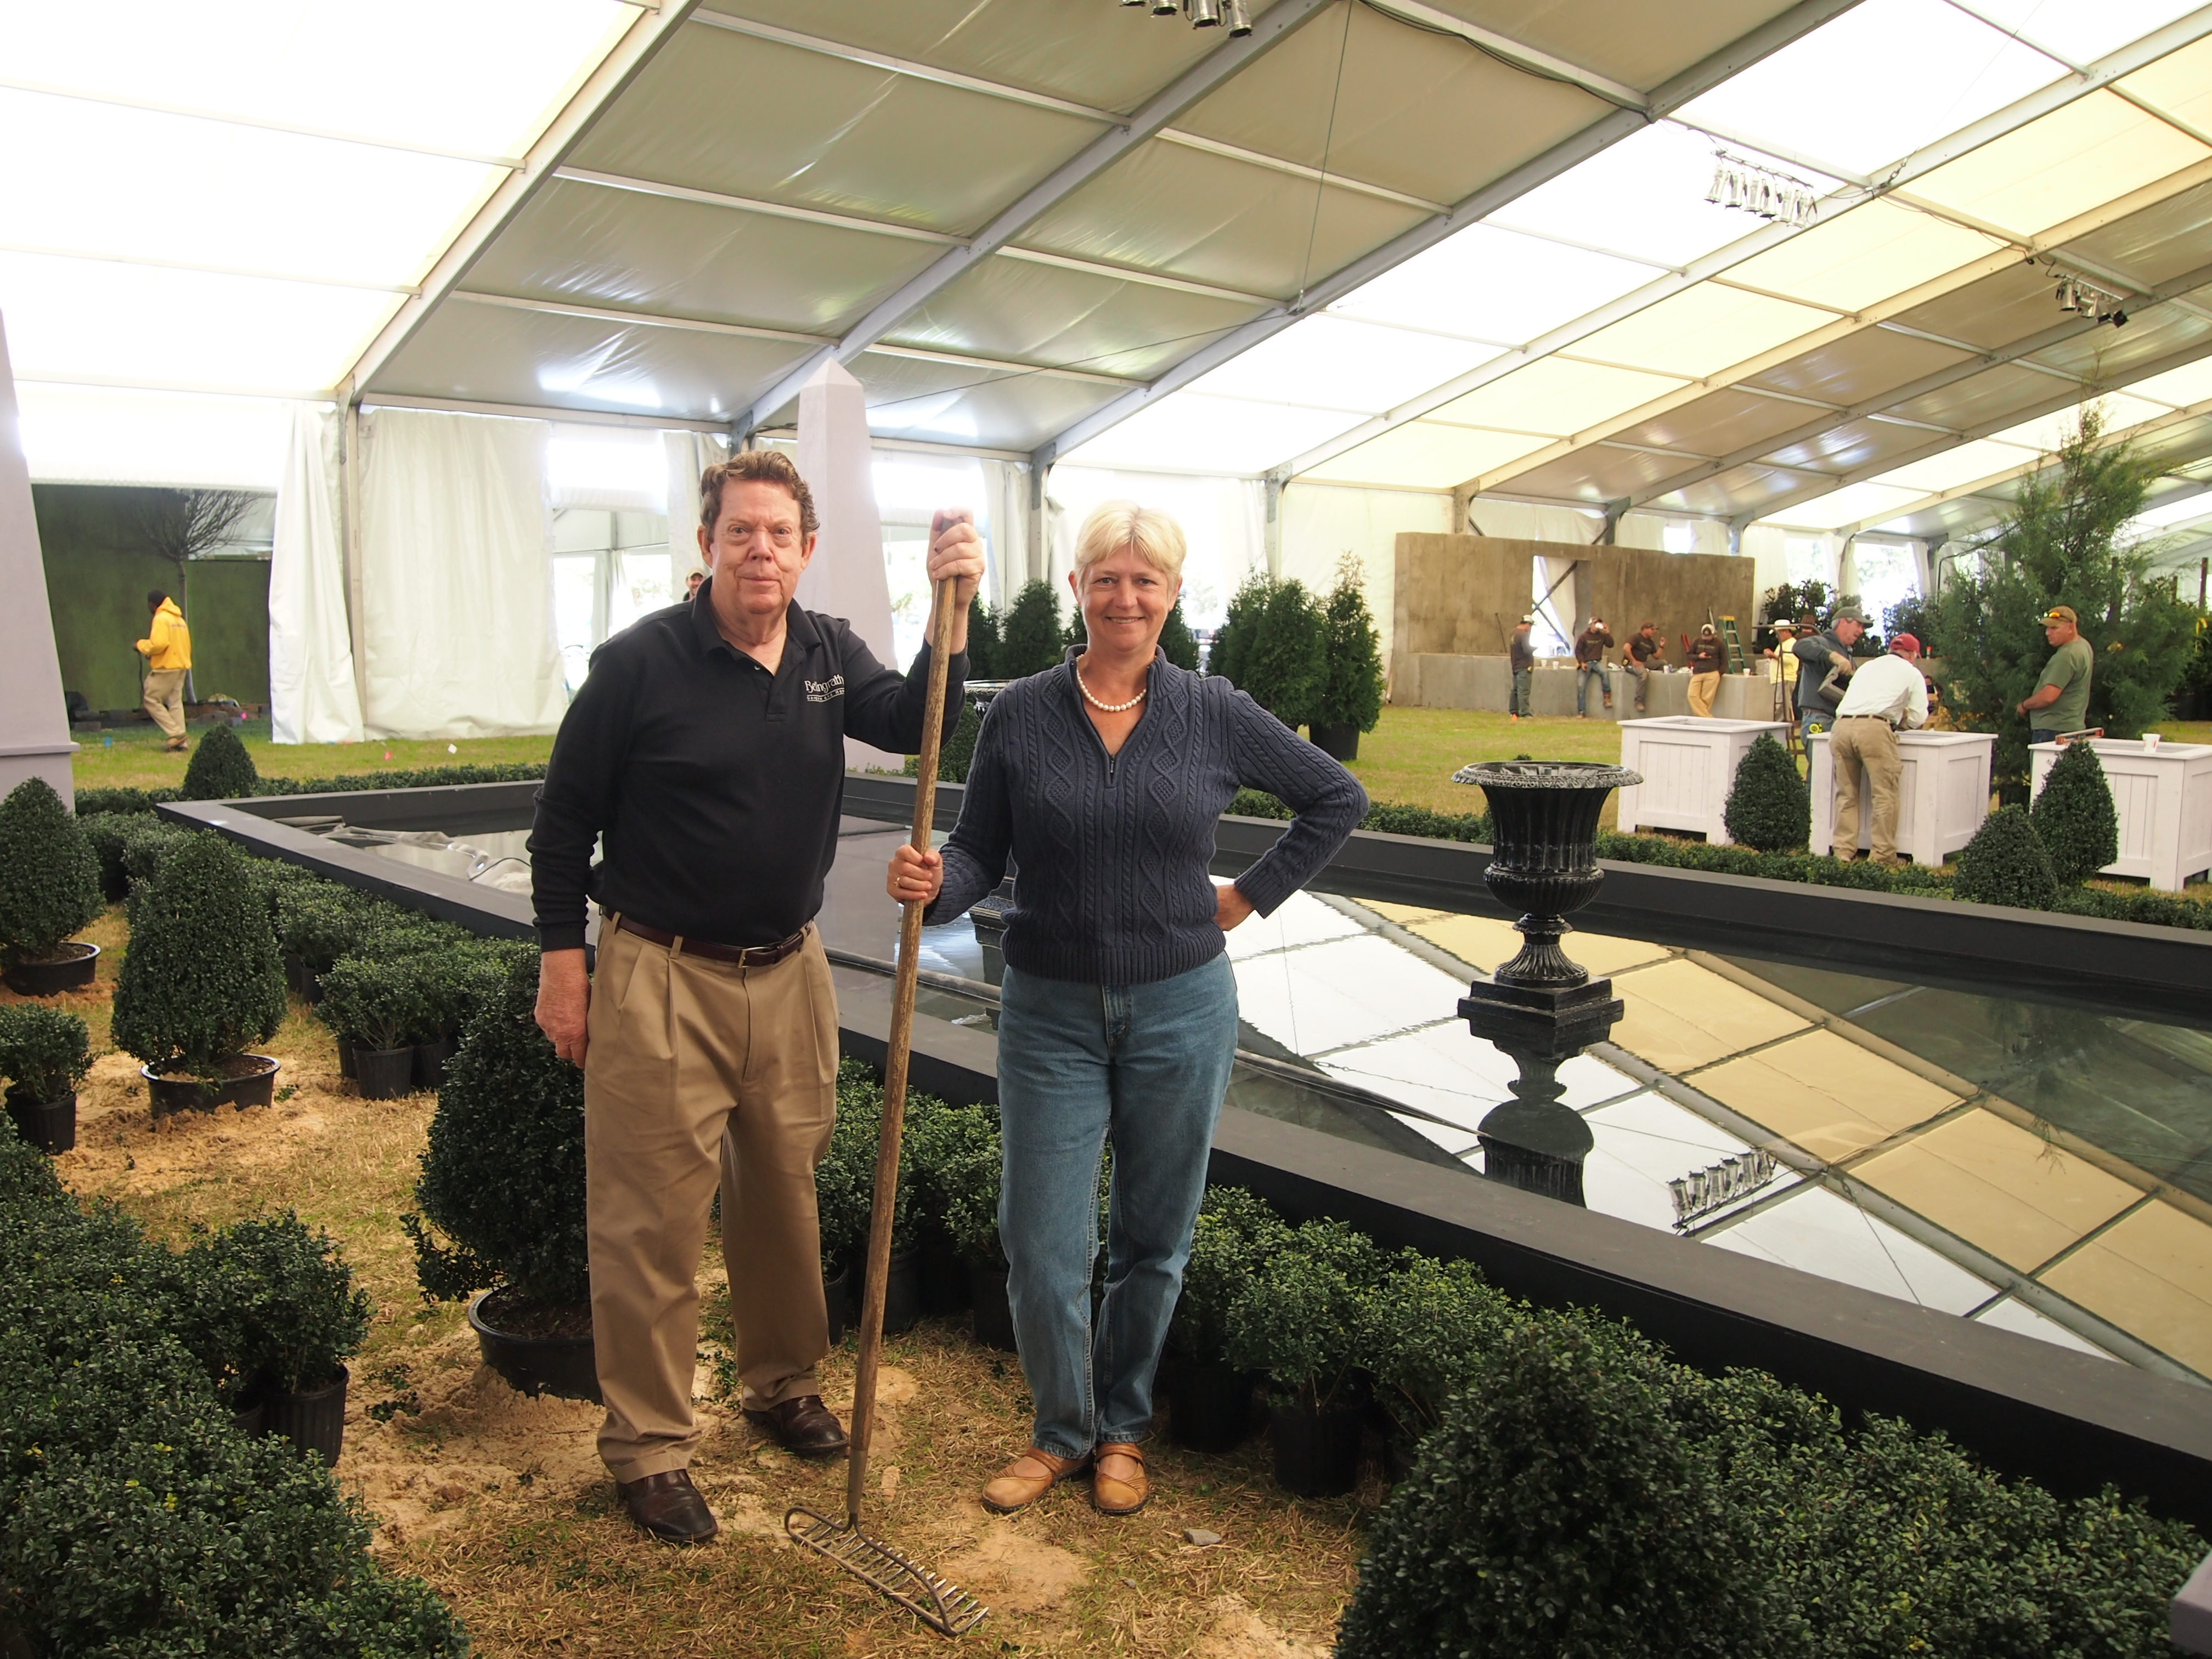 Dr. Bill Barrick and Display Coordinator Barbara Smith pose with the Bellingrath display at the Festival of Flowers on March 4.